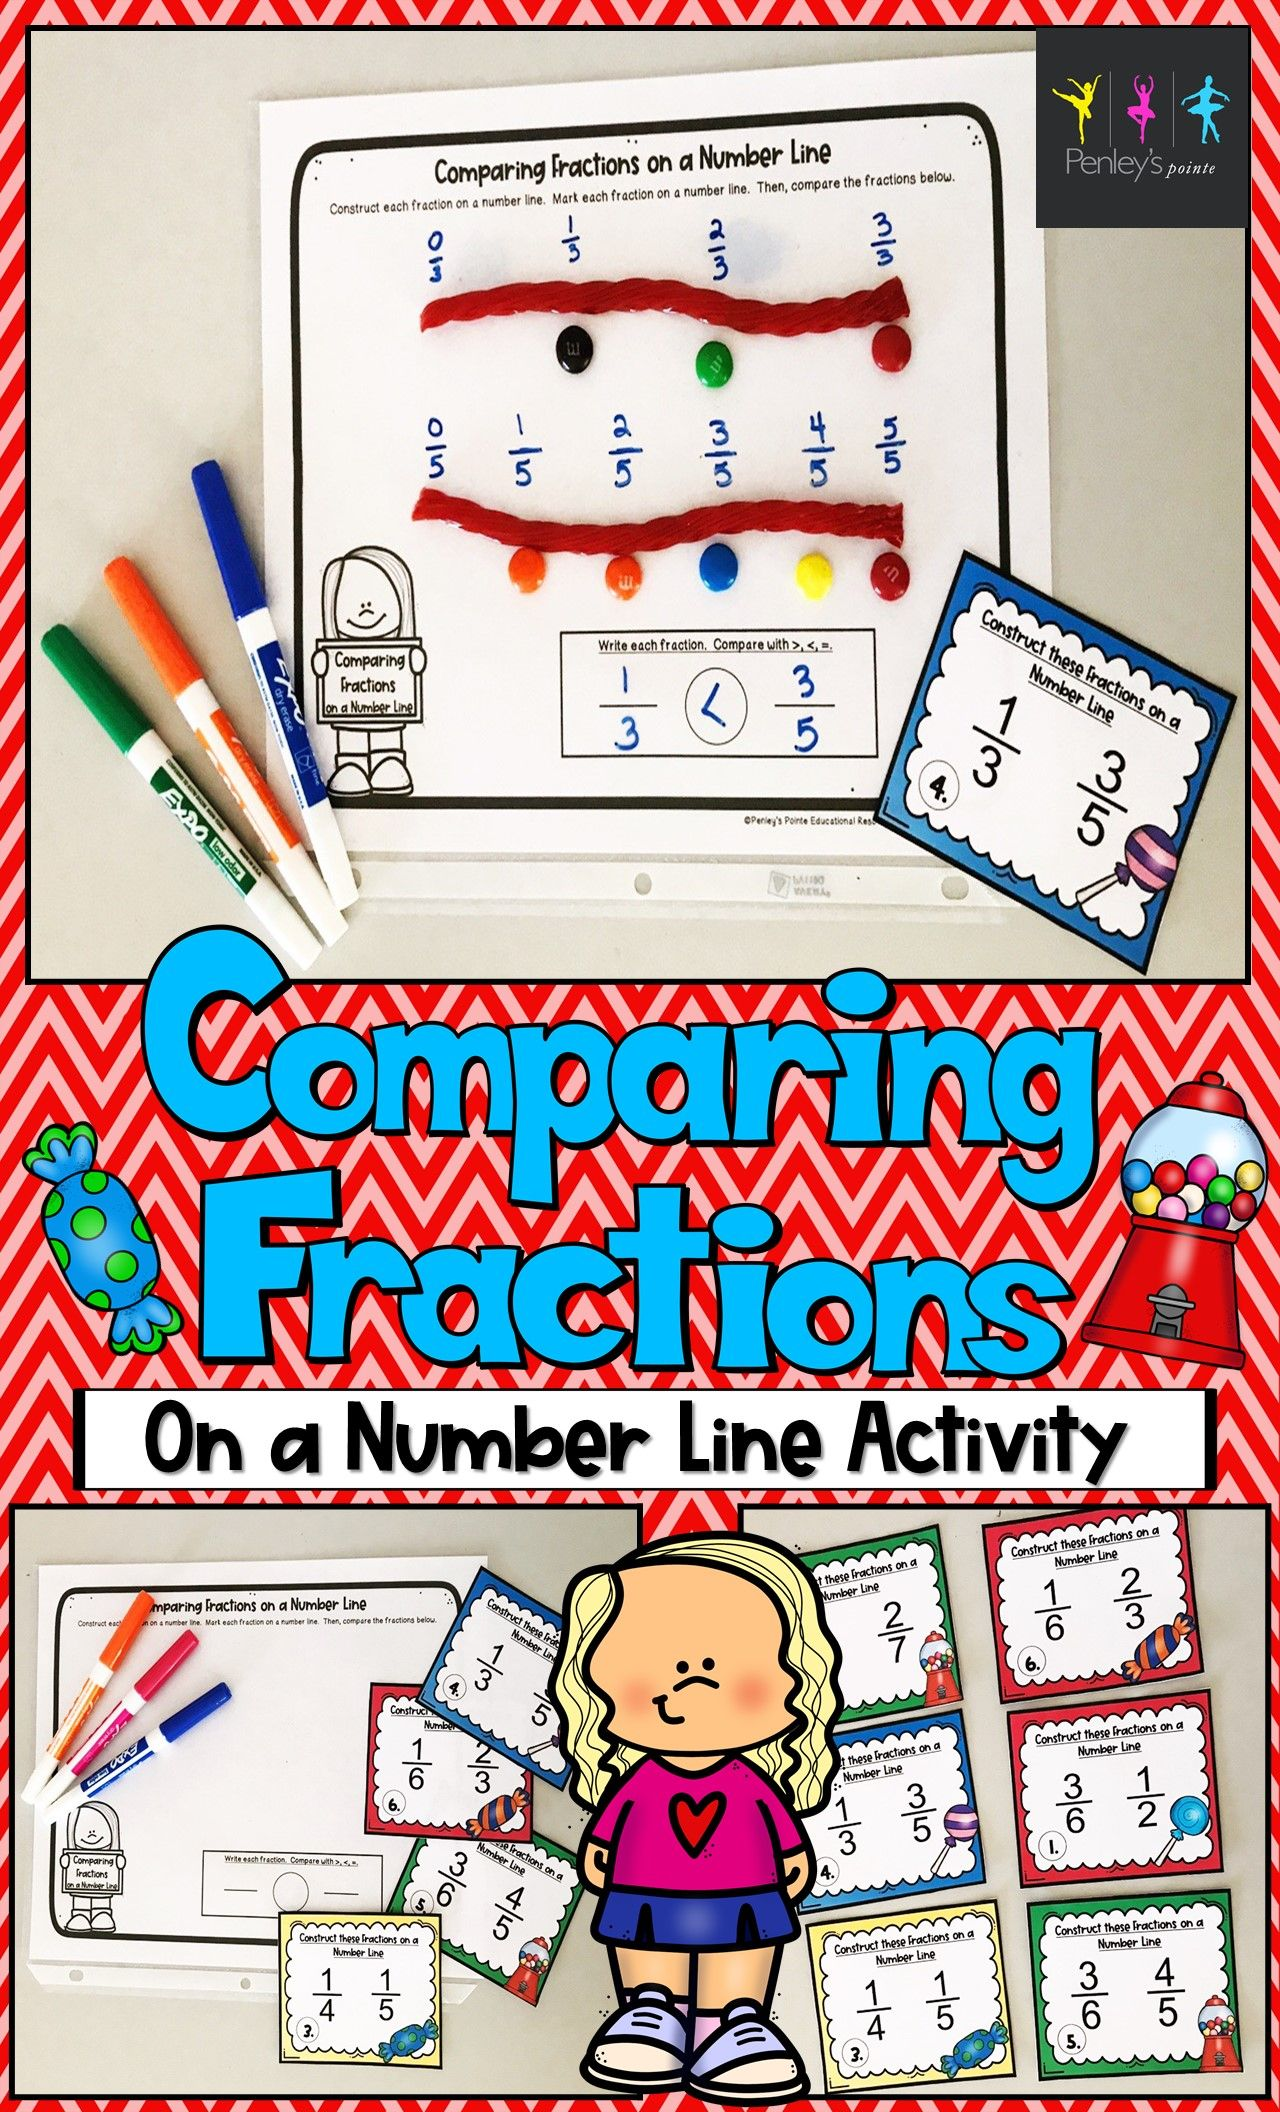 Comparing Fractions On A Number Line Activity In